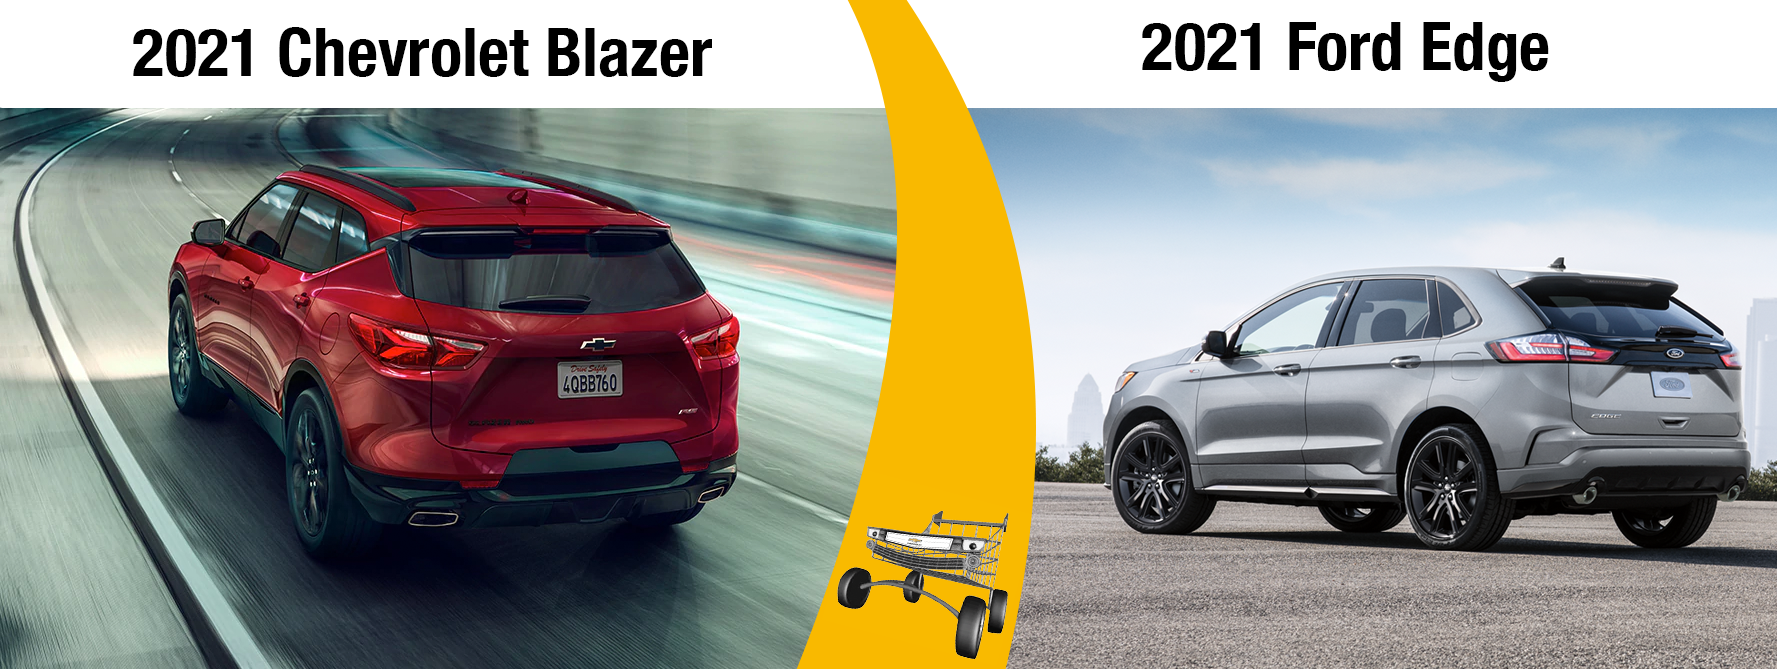 Which 2021 SUV to Buy? The 2021 Chevy Blazer vs 2021 Ford Edge